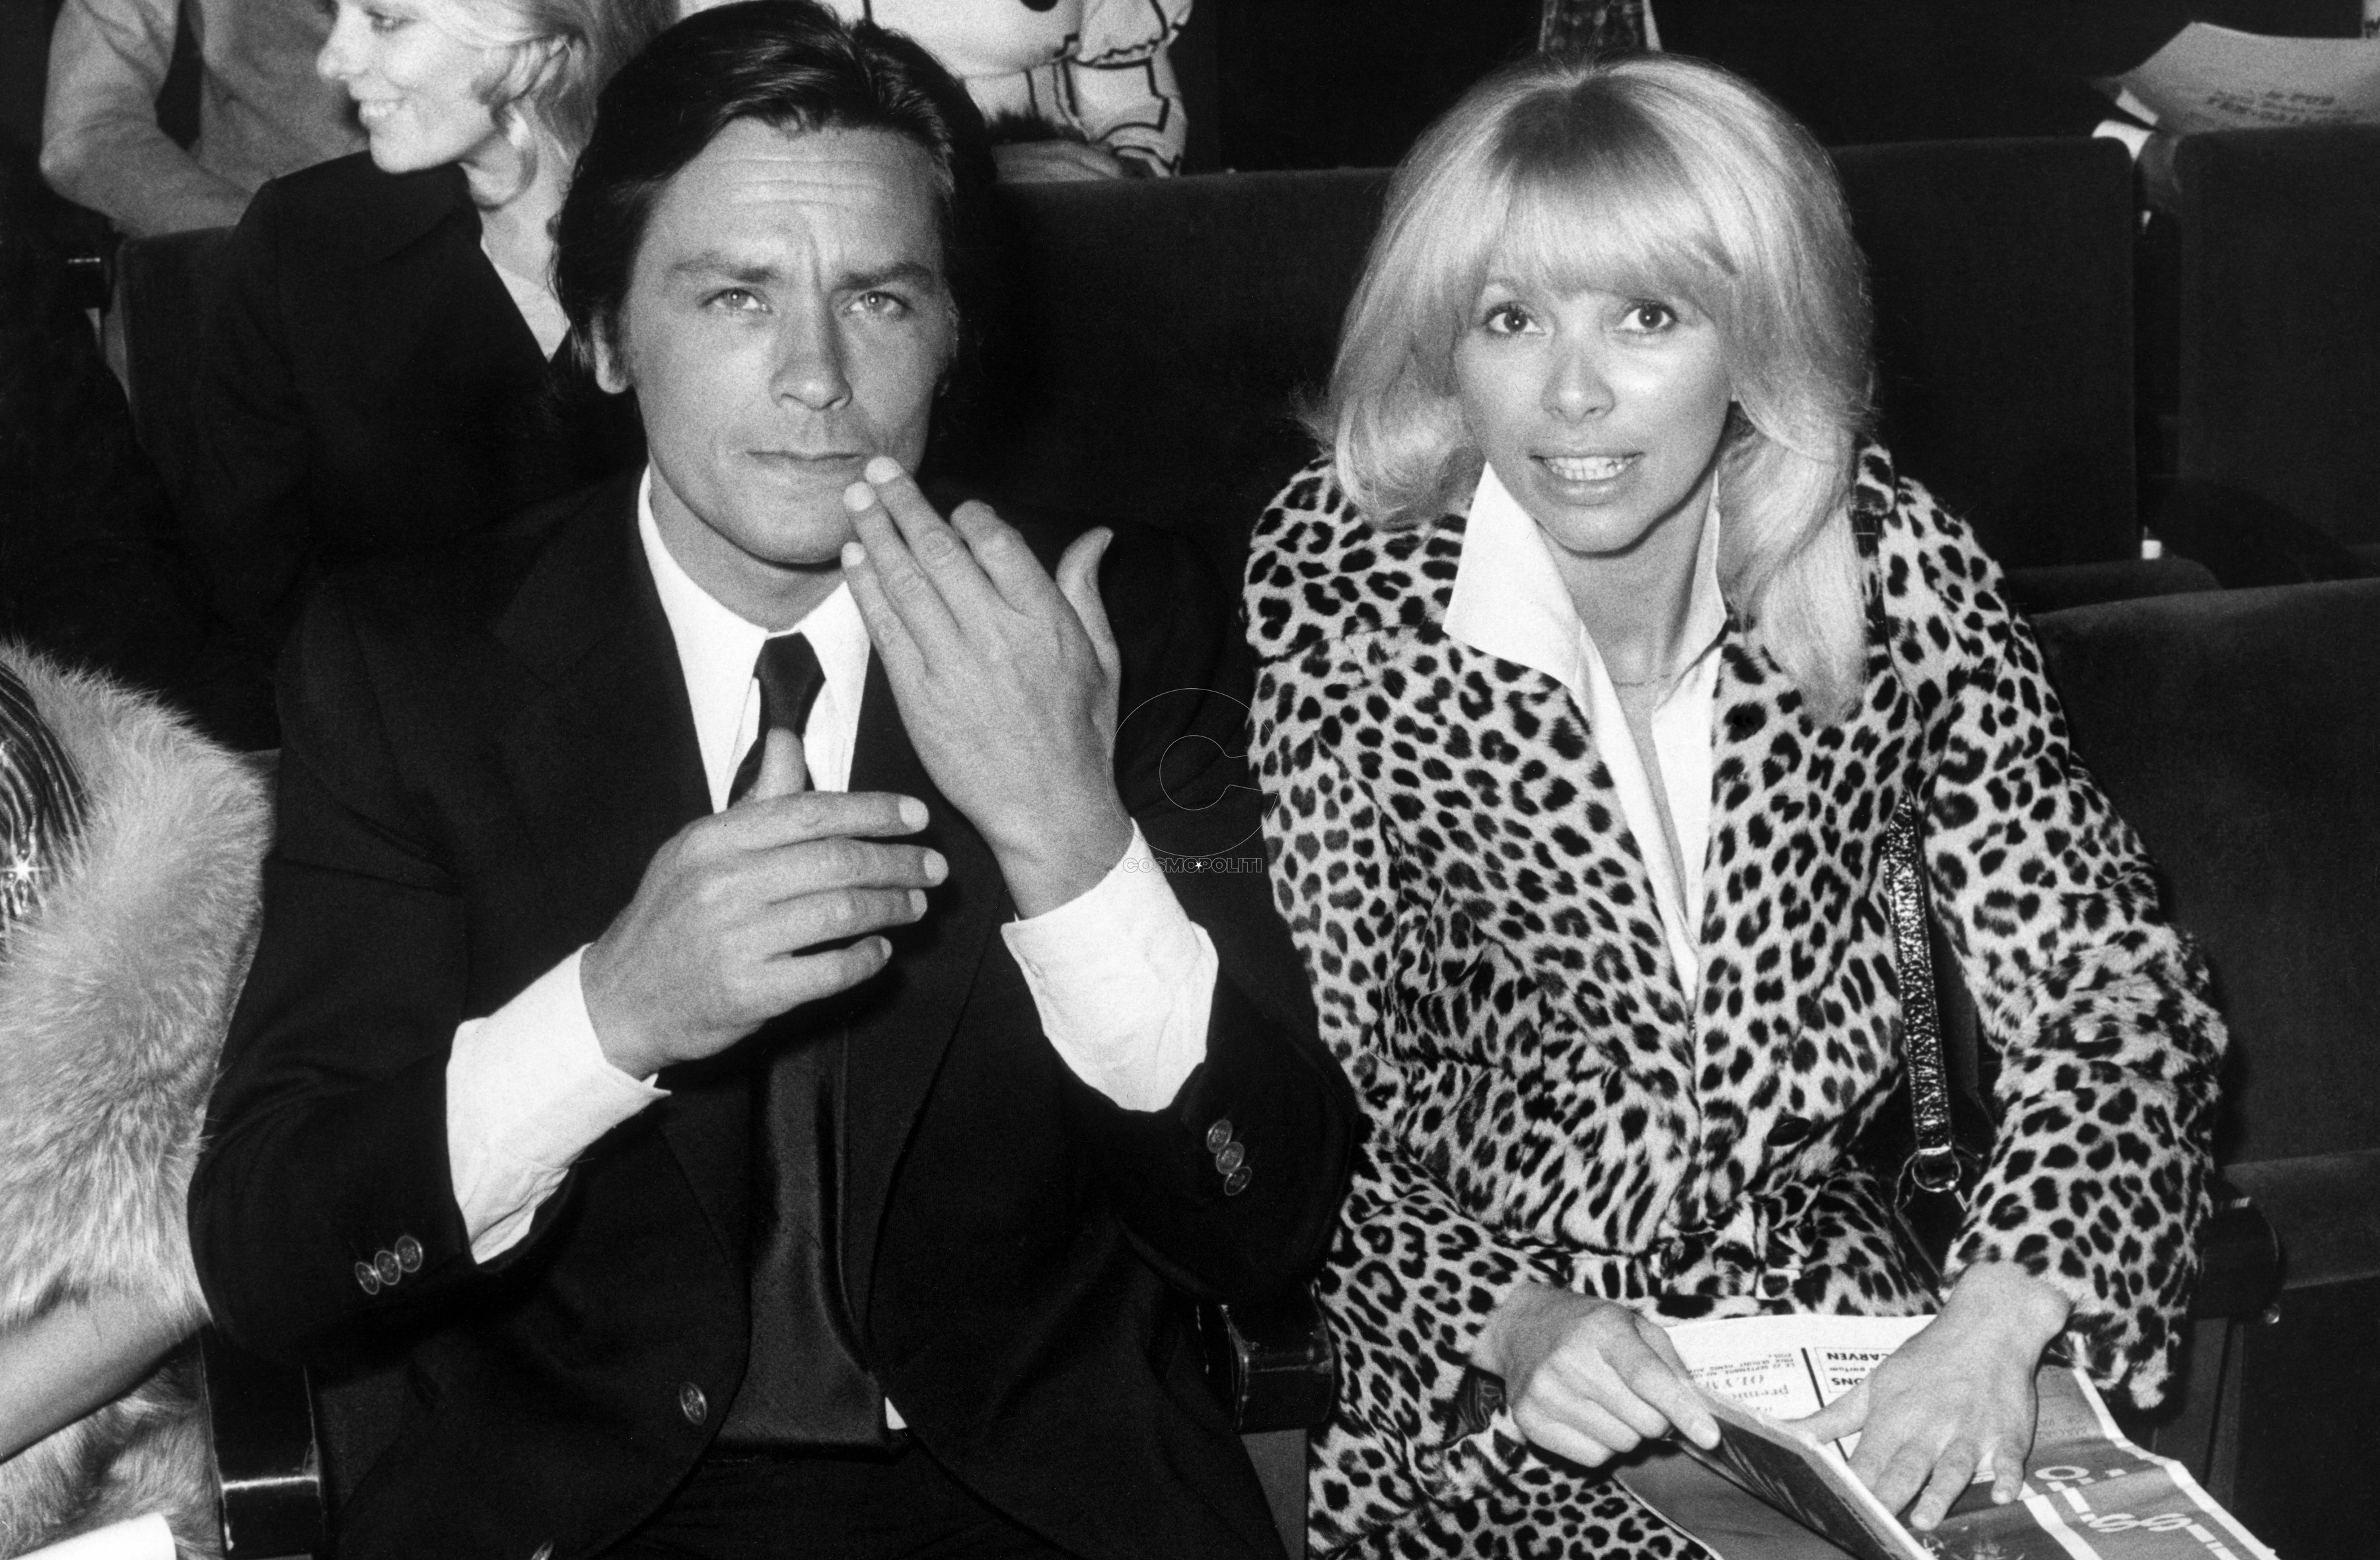 Alain Delon and Mireille Darc in 1974. Photo by DPA/ABACAPRESS.COM  | 242437_001